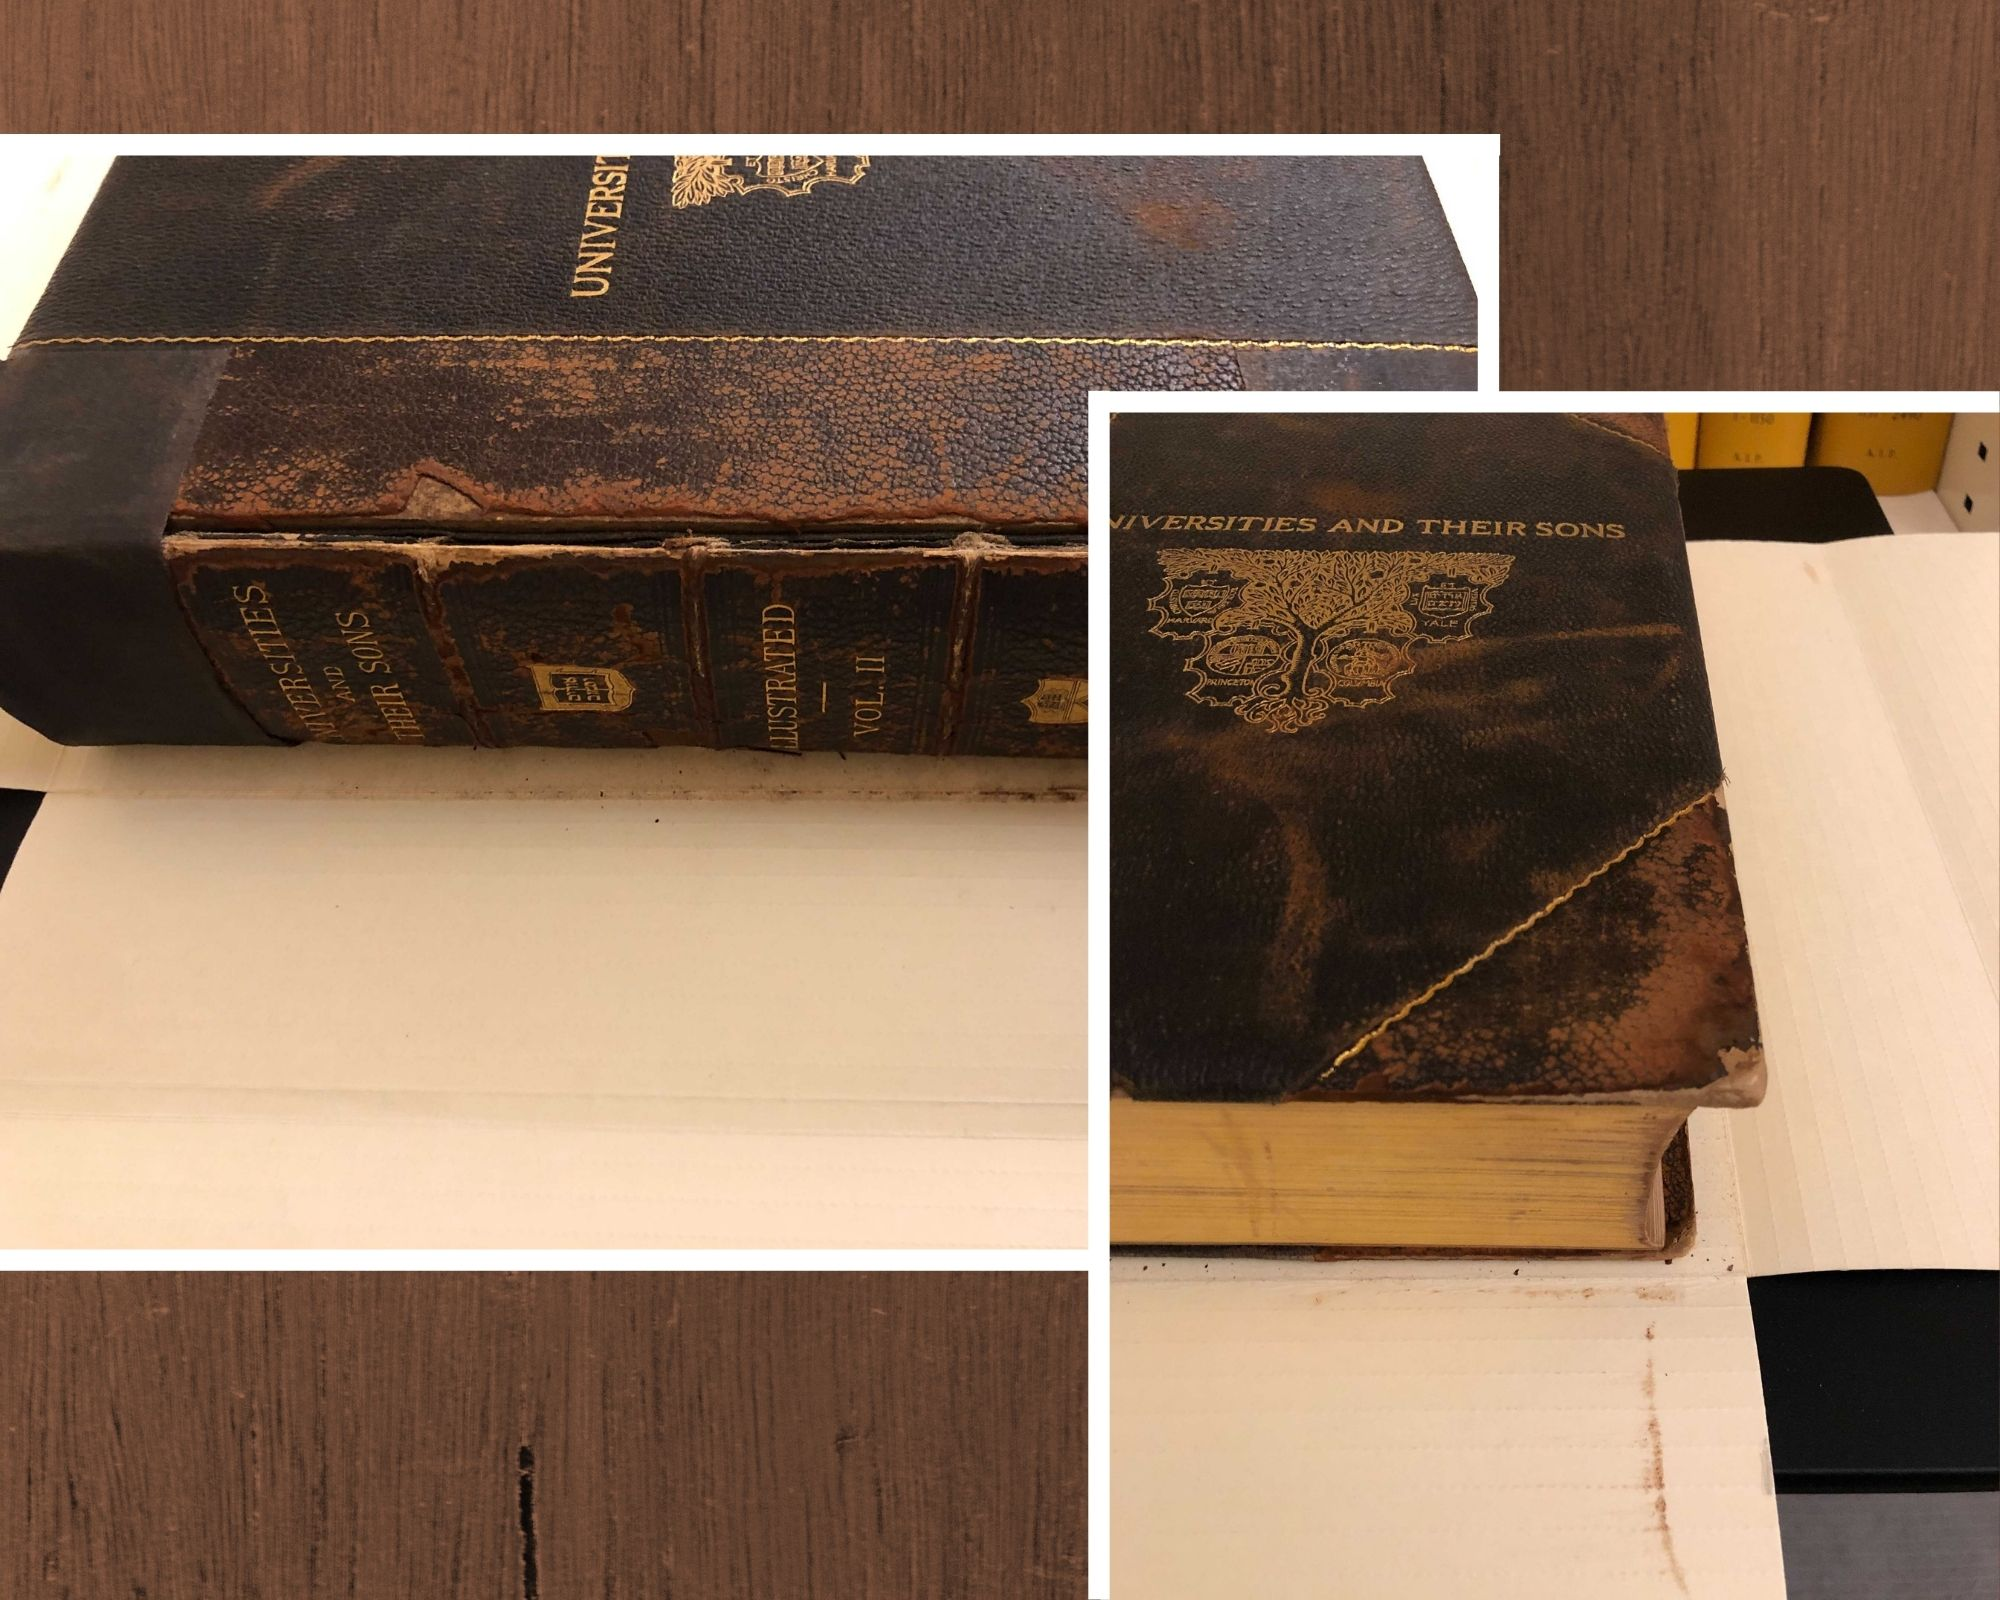 Image shows heavy red rot on the cover and spine of the book Universities and Their Sons, Vol. II (1899).